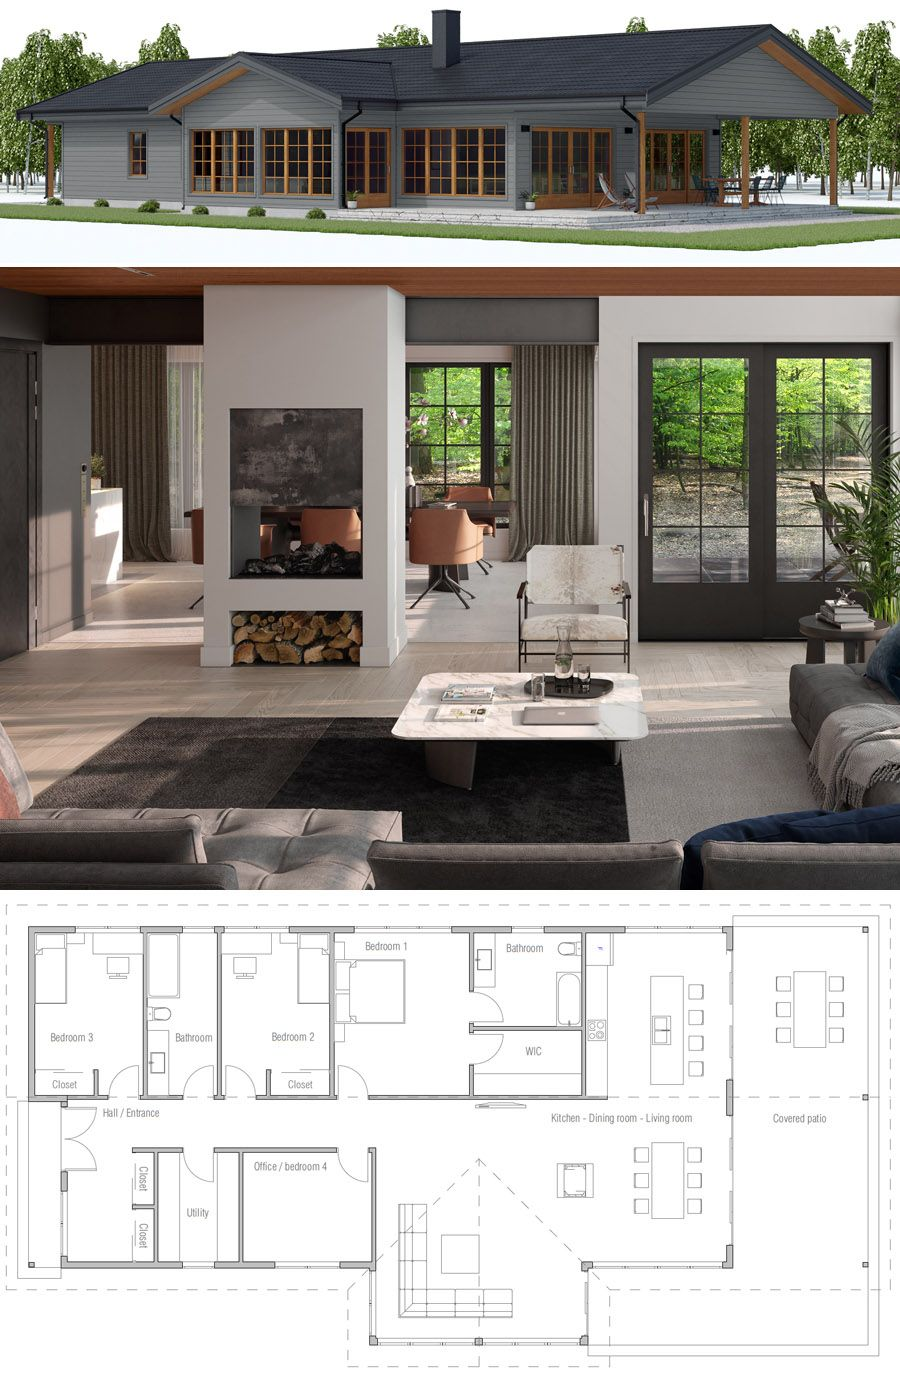 Home plan house designs homeplans floorplans newhomes architecture archdaily adhouseplans dwell interiordesign also rh pinterest